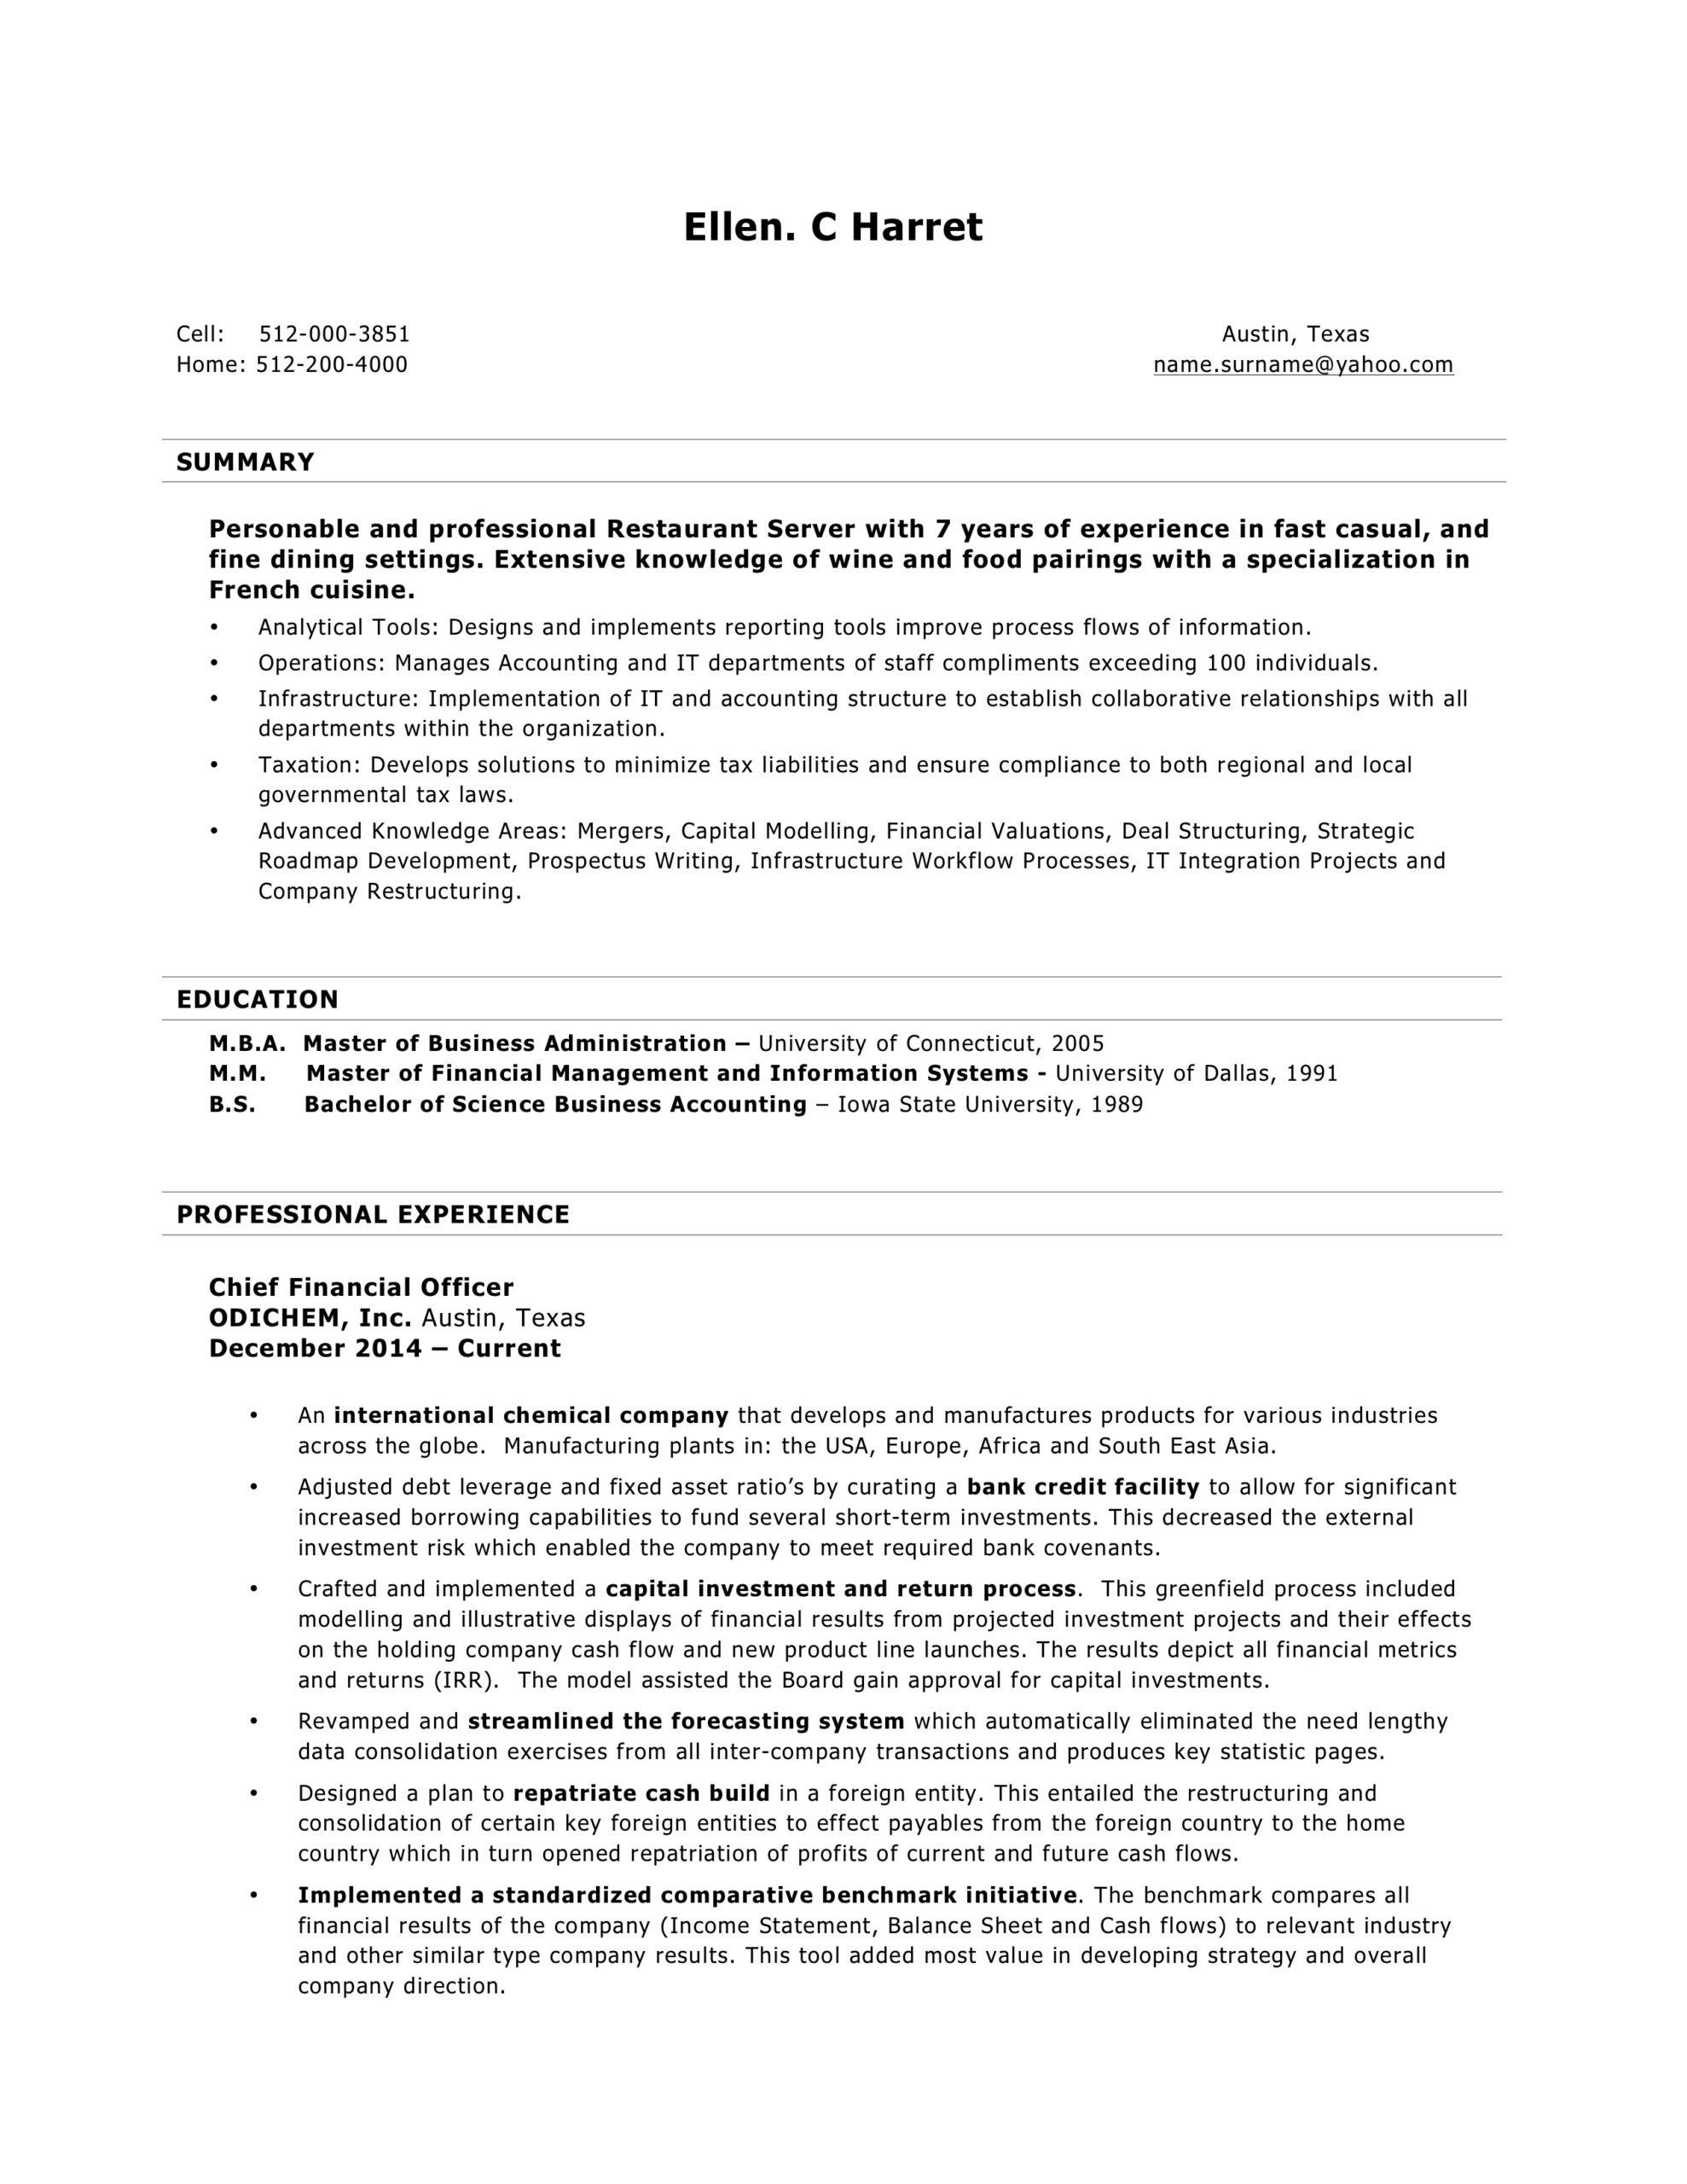 free word resume templates in ms best server template past tense work expense report Resume Best Resume Templates Word